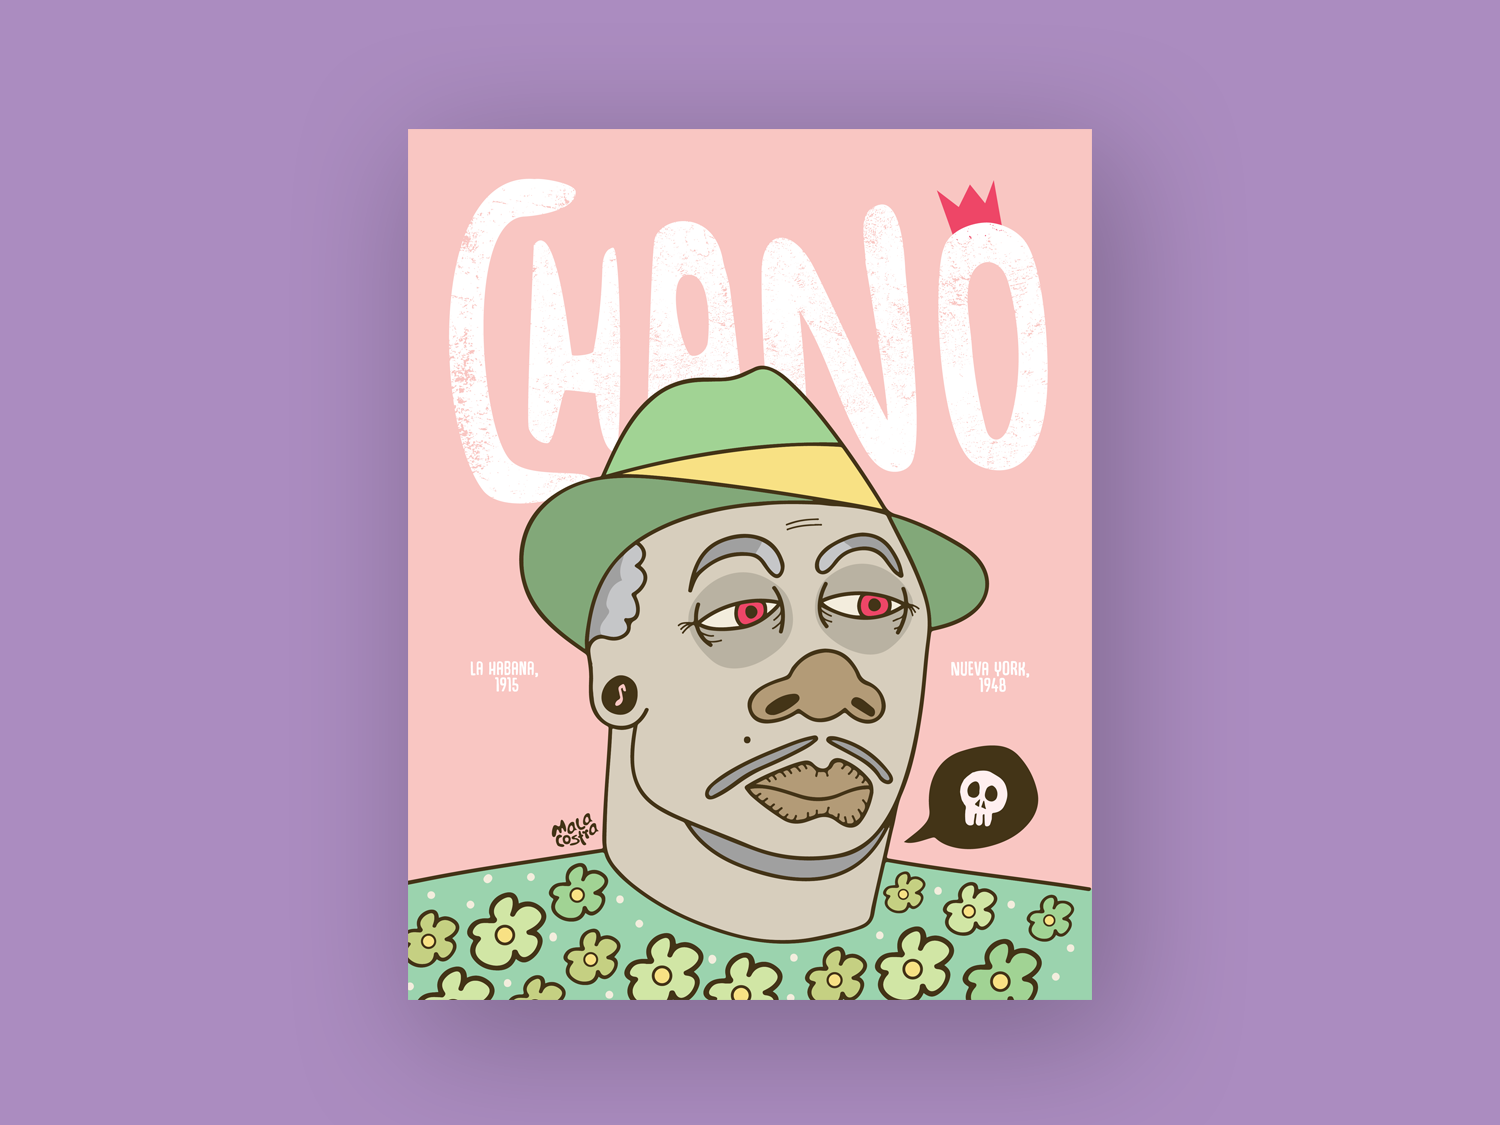 Chano Pozo pastel colors ai music art illustrator chano pozo animation illustration malacostra book design editorial design character design